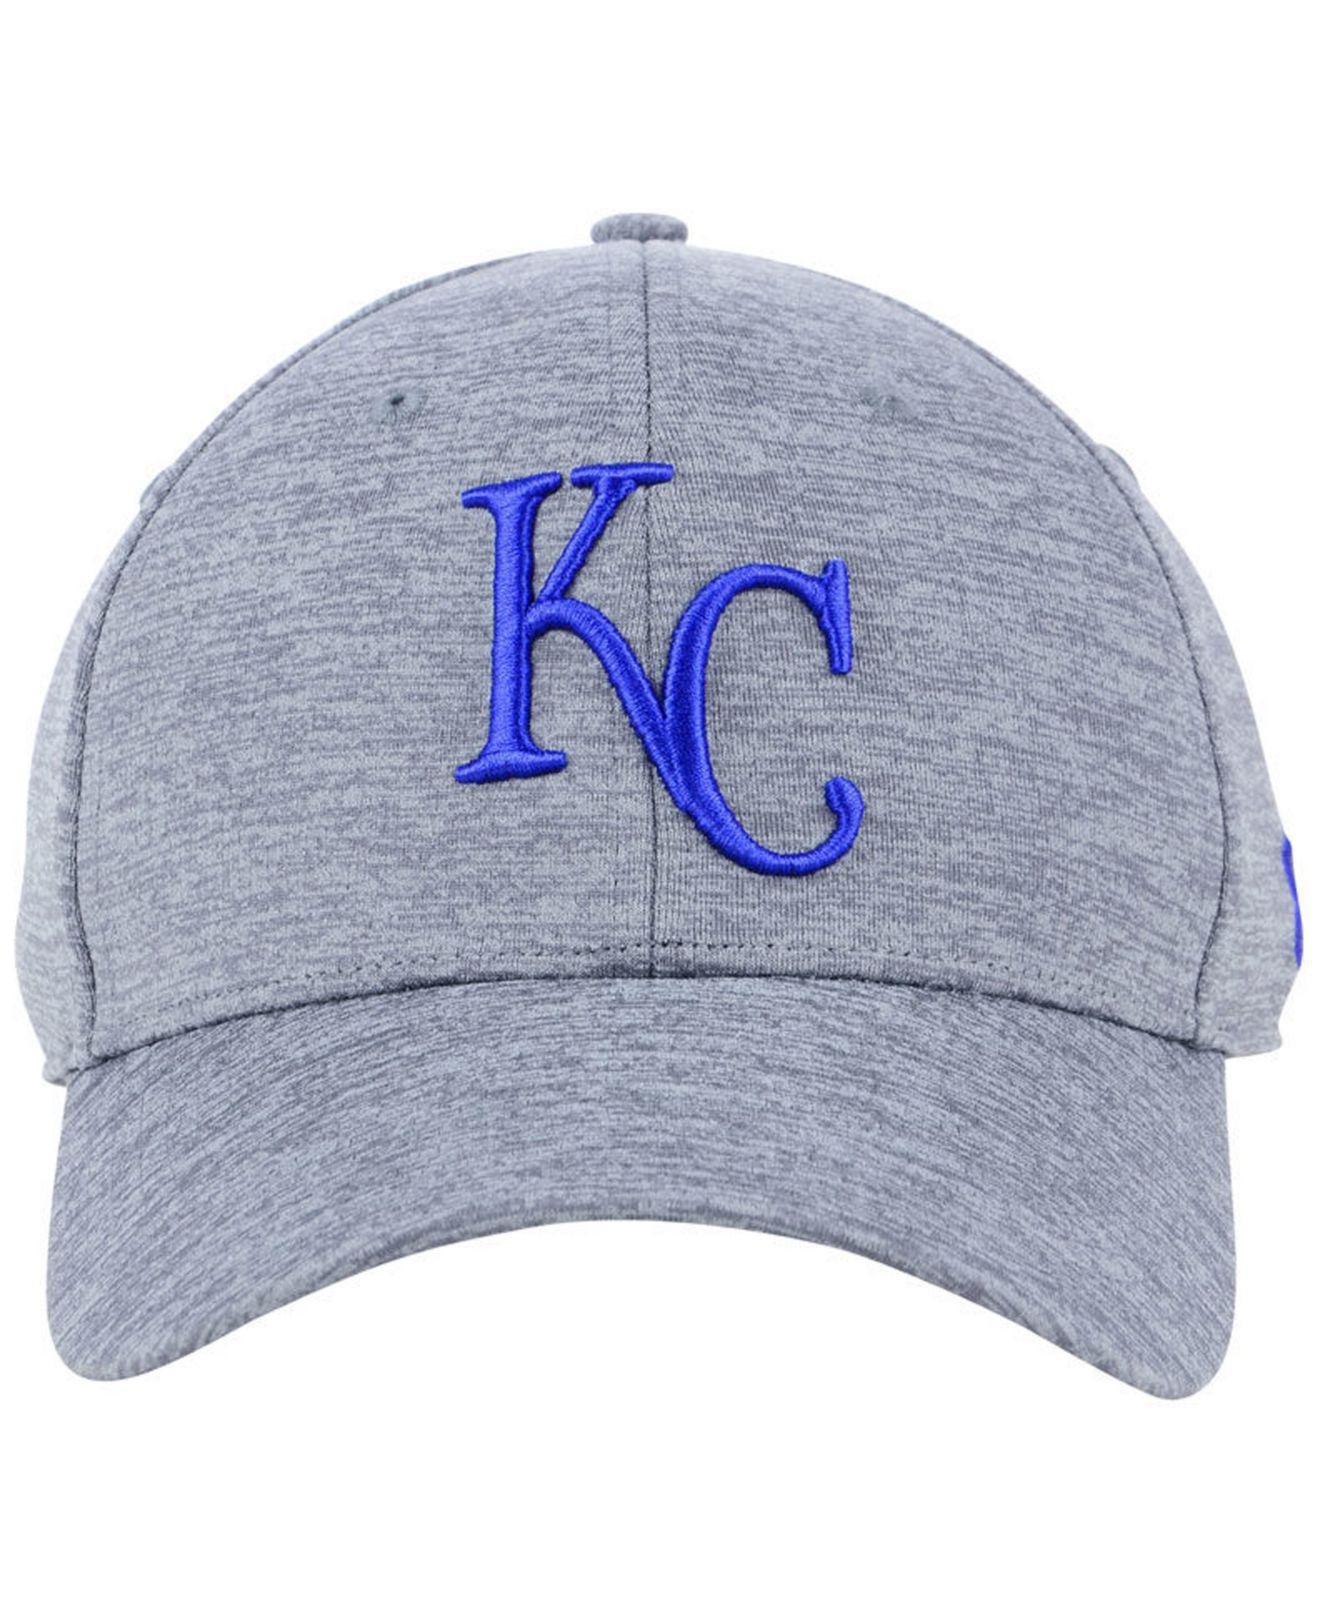 761a17bfb08 Lyst - Under Armour Kansas City Royals Twist Closer Cap for Men